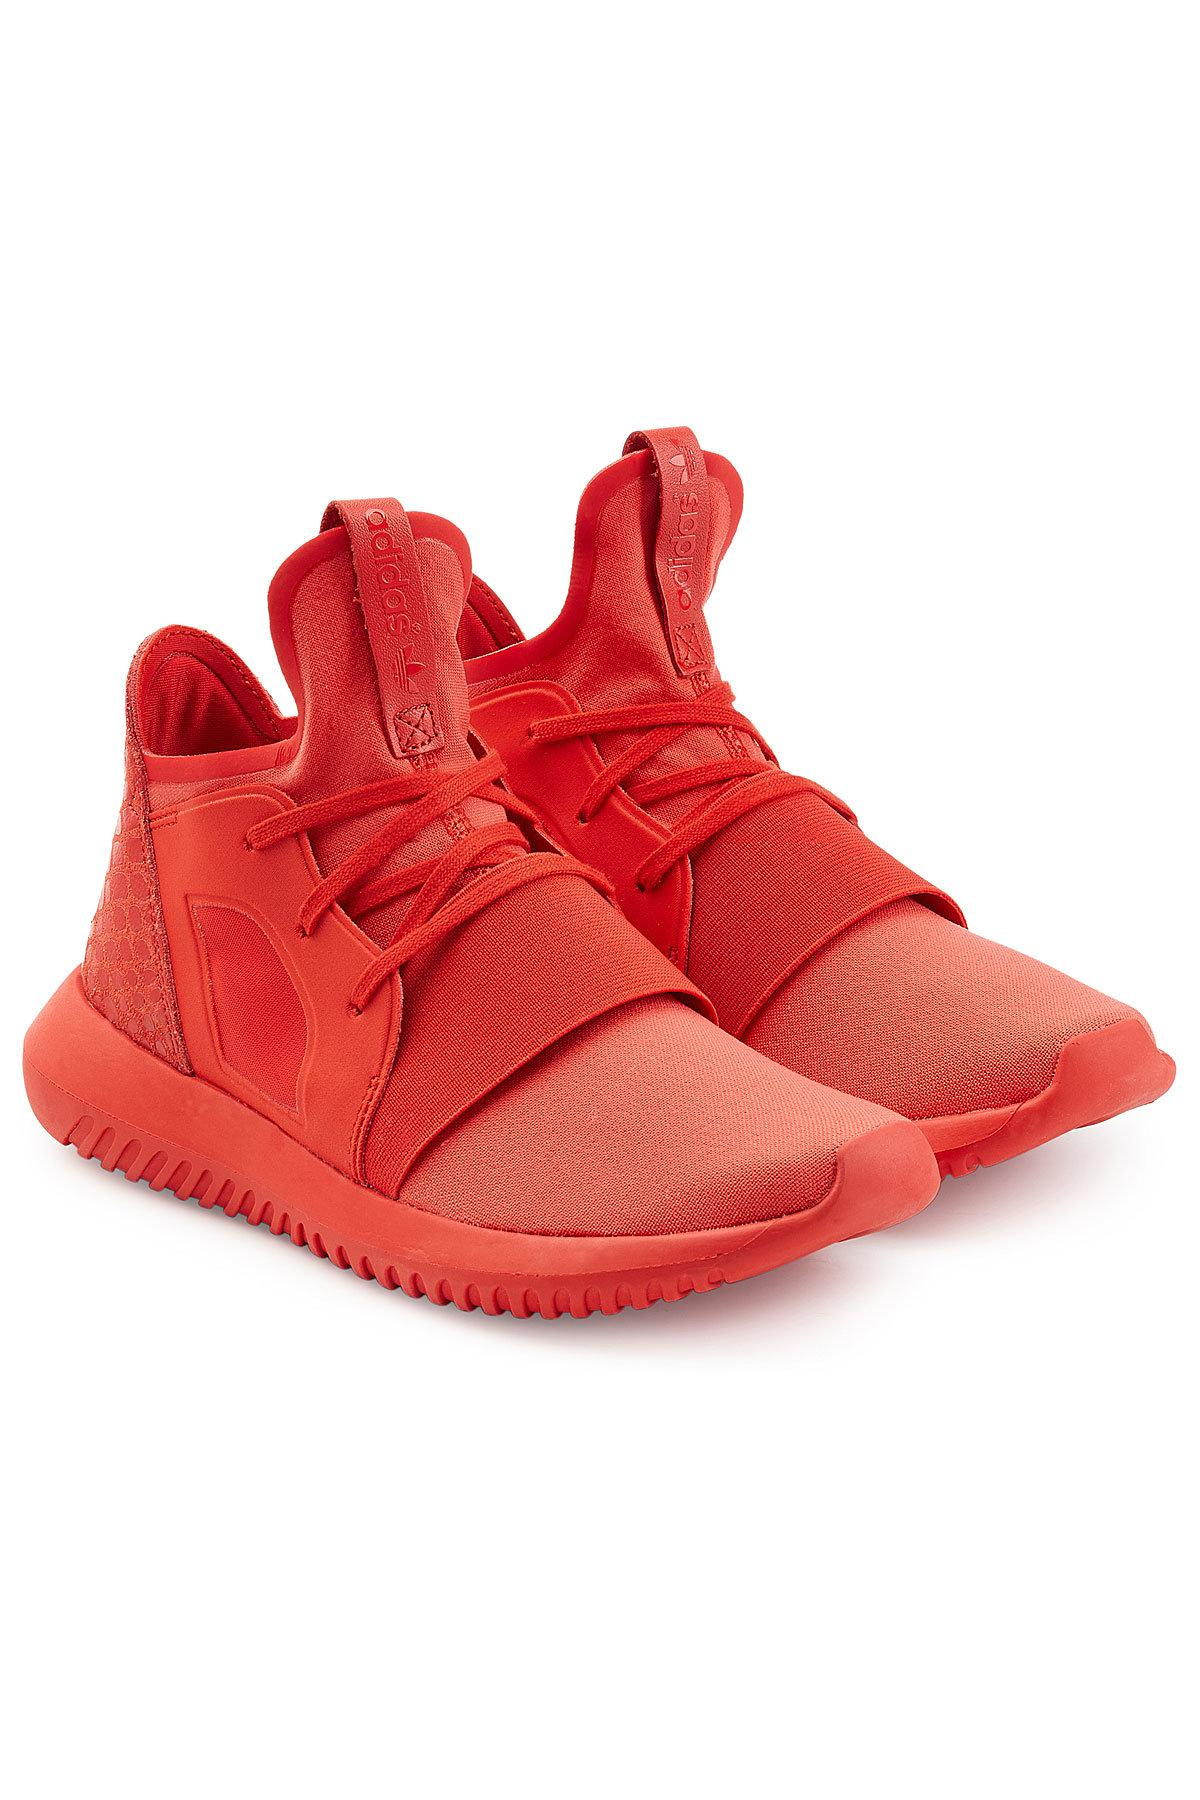 huge discount 073ed a8a32 ... where can i buy adidas originals. womens red tubular x sneakers eeeb6  b0551